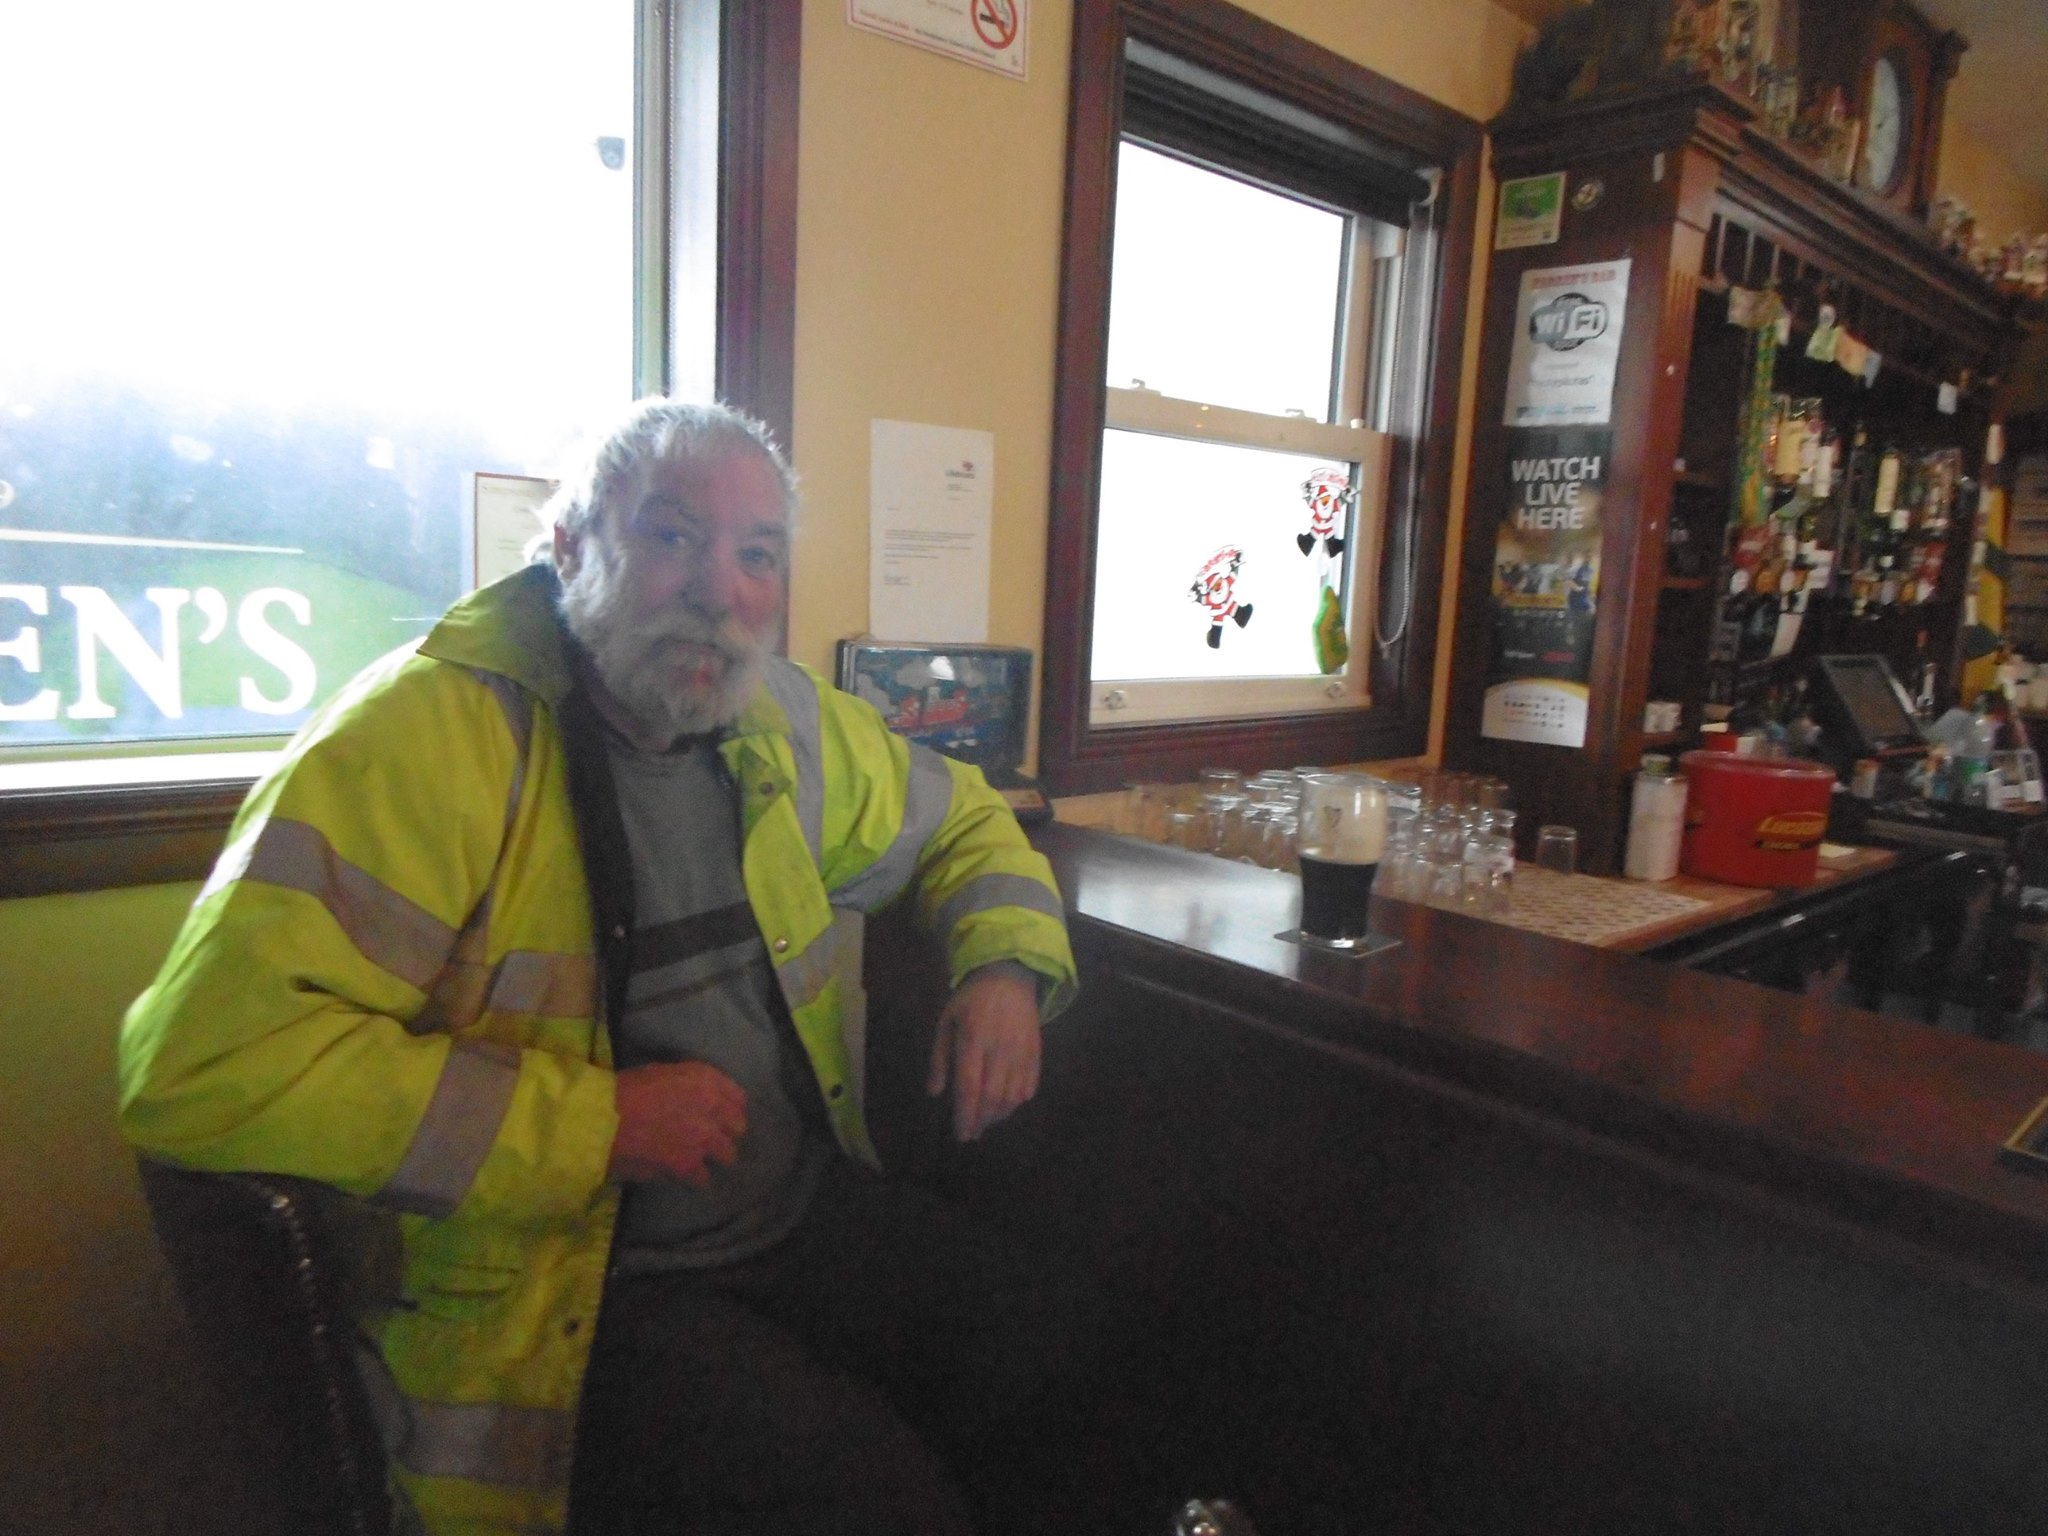 Bill, a regular local in Farren's bar, who when he saw my camera, asked for a photo.